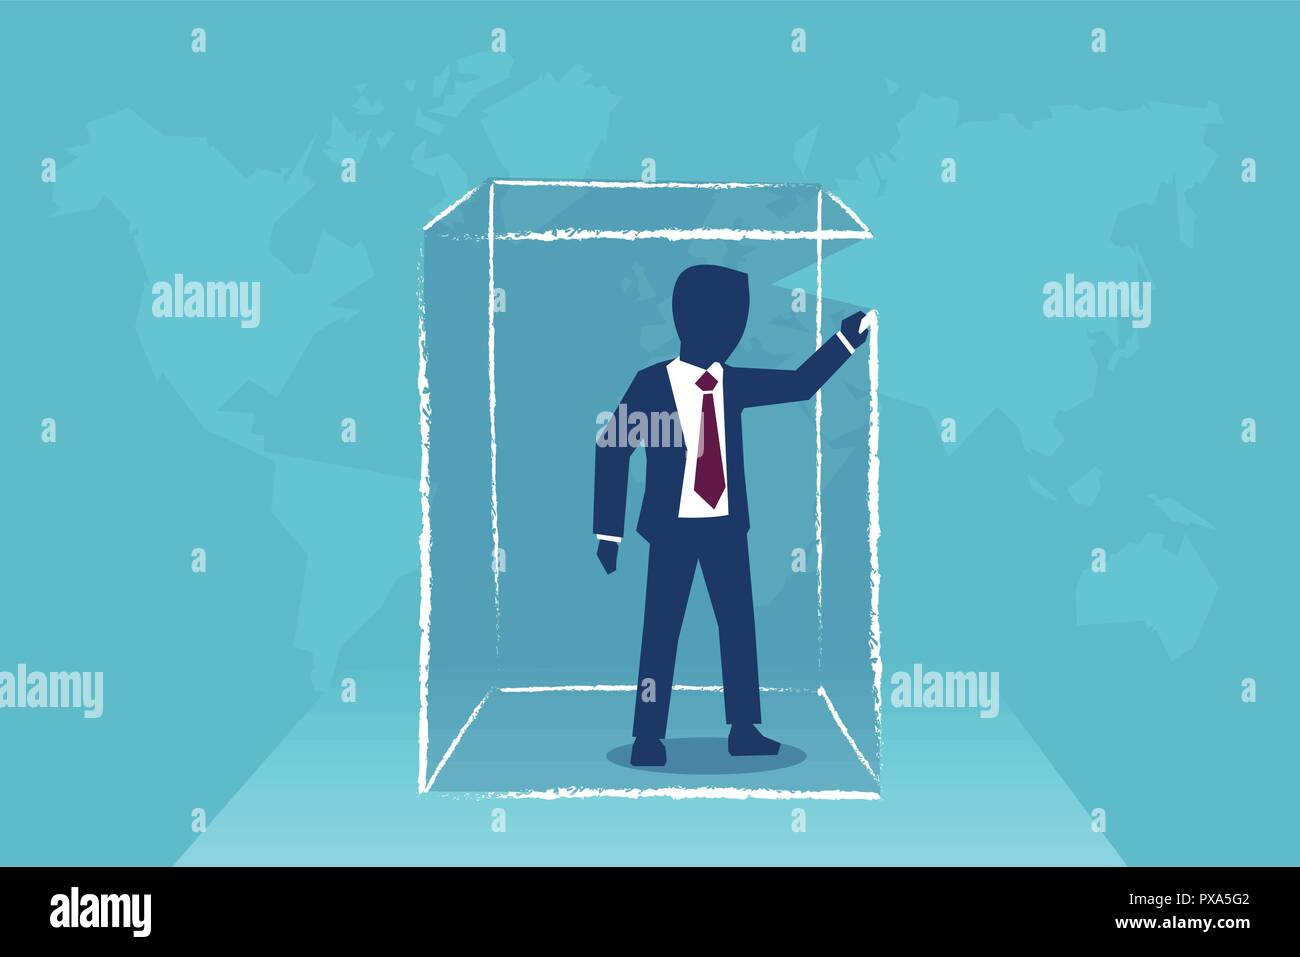 Concept vector illustration of man drawing box around himself creating limits and borders - Stock Image